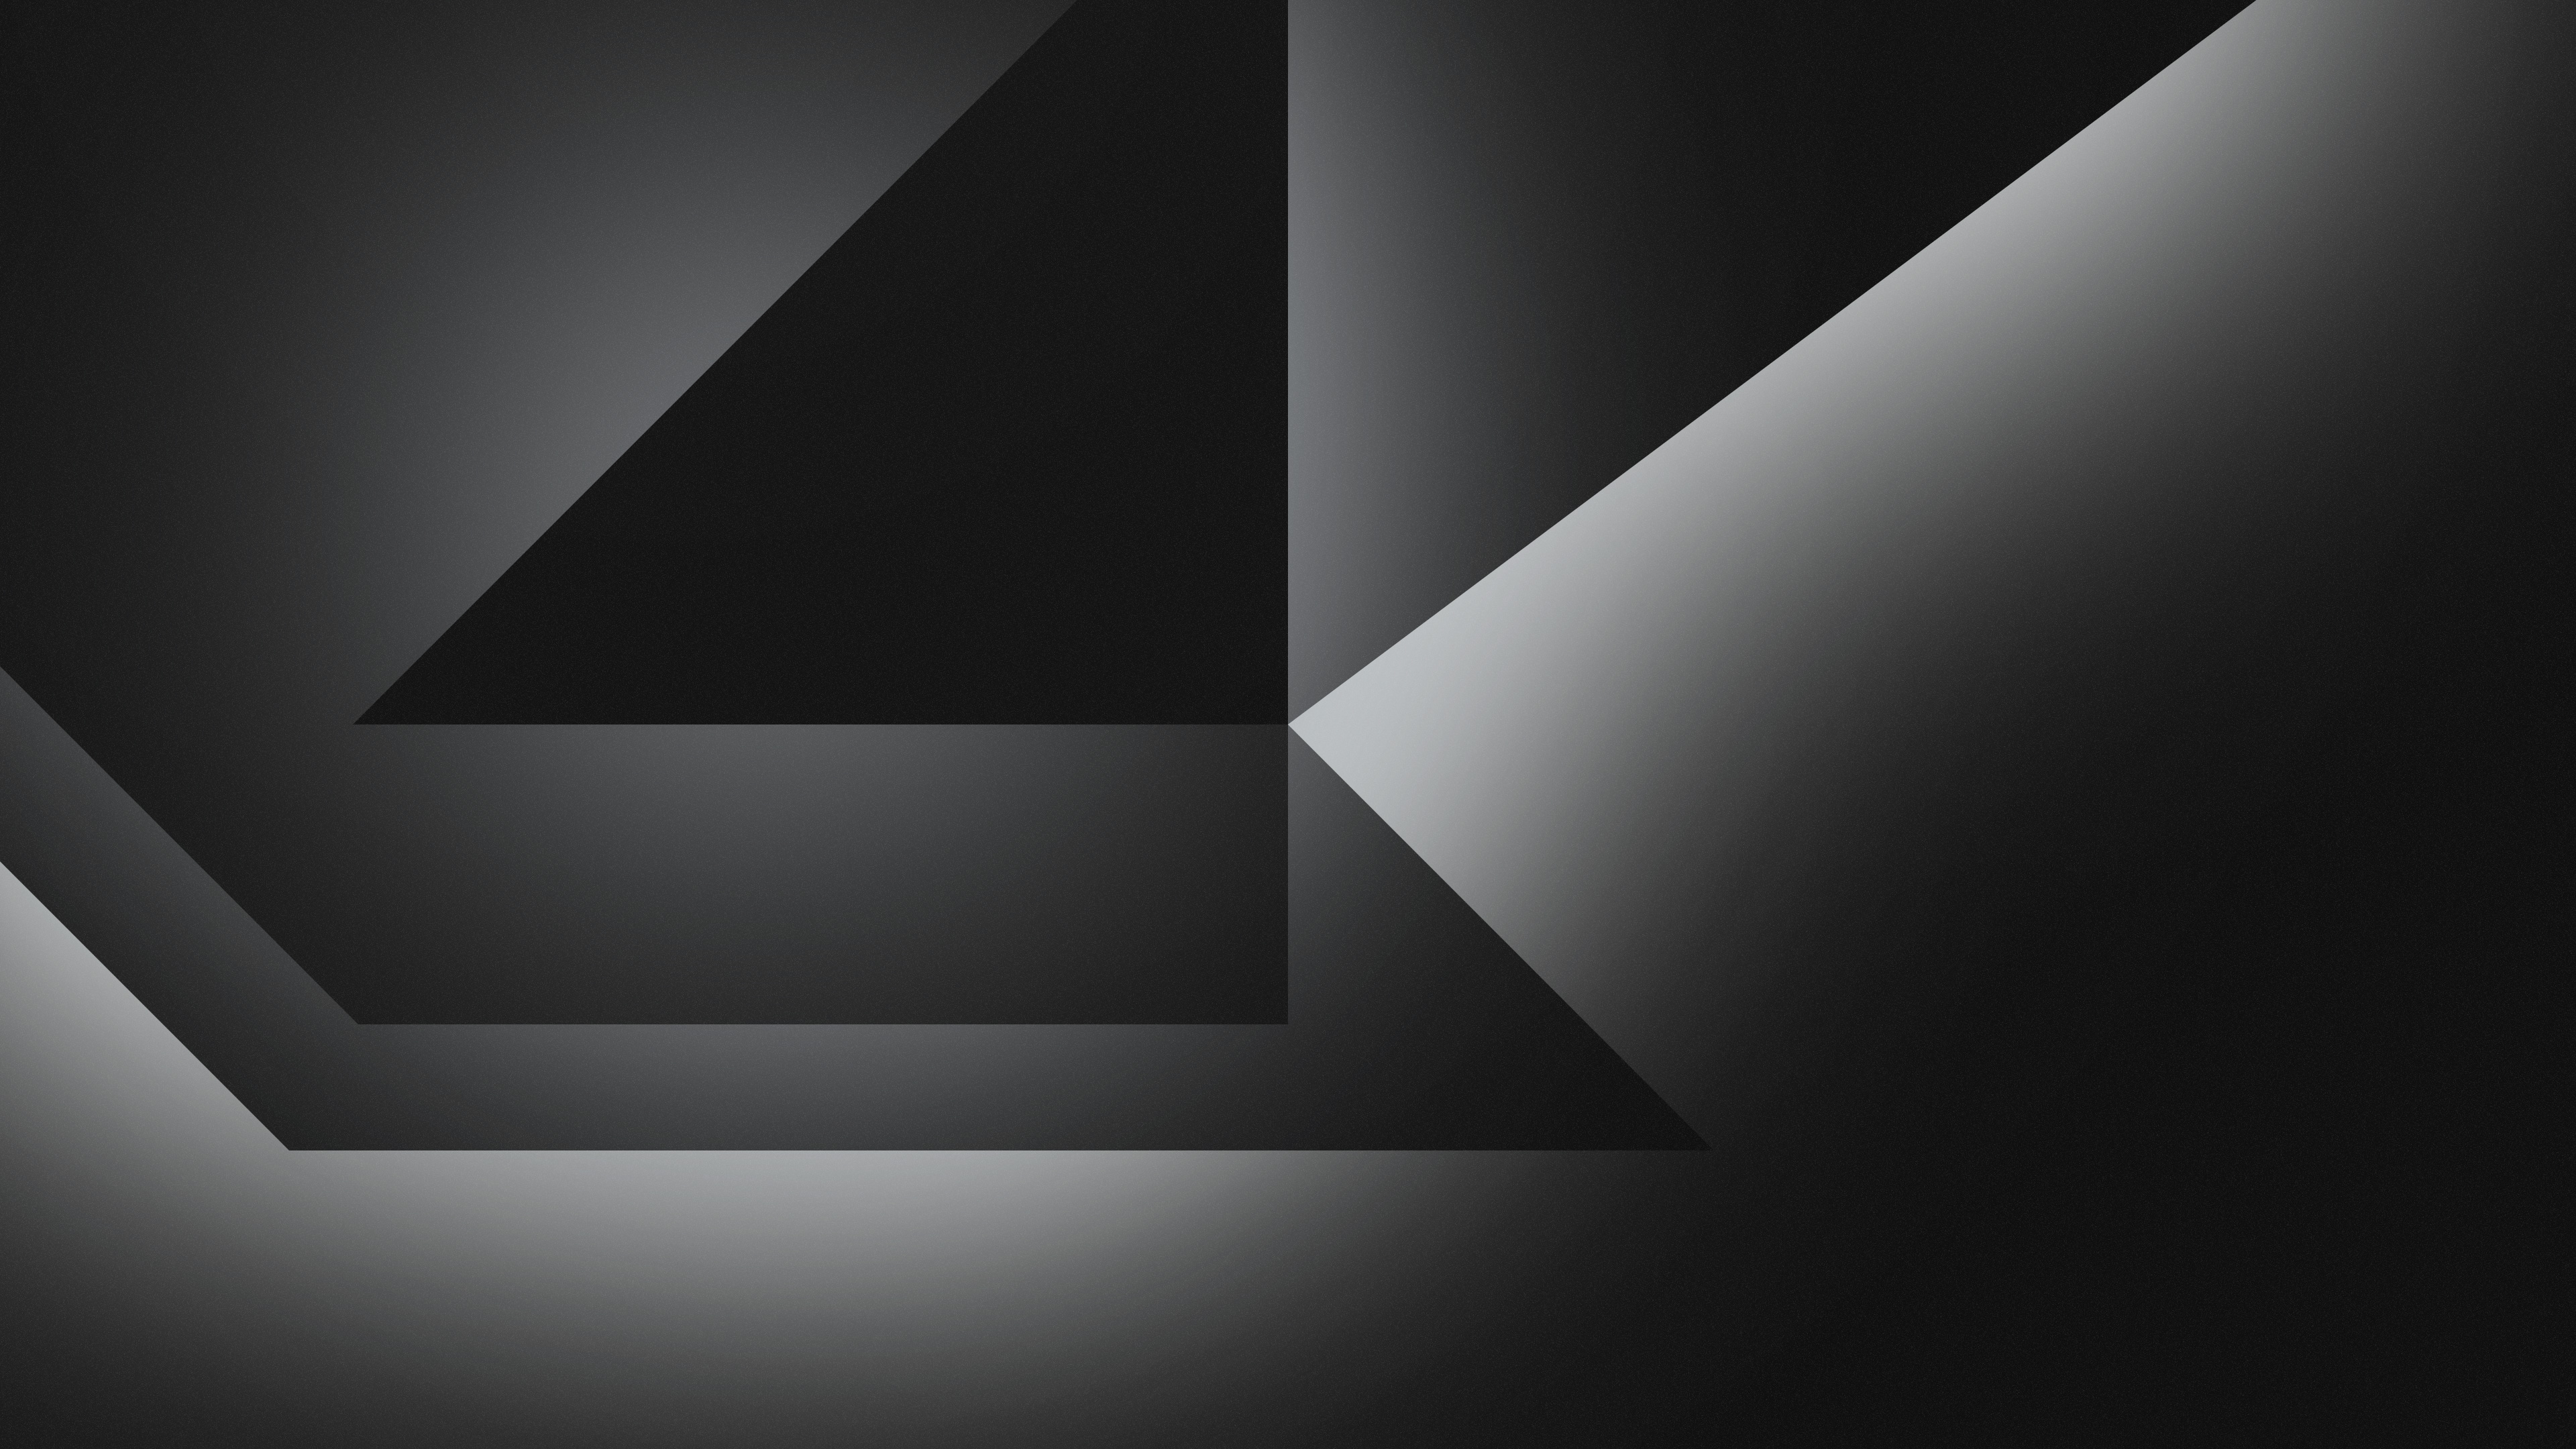 1680x1050 Dark Grey Abstract Shapes 4k 1680x1050 Resolution